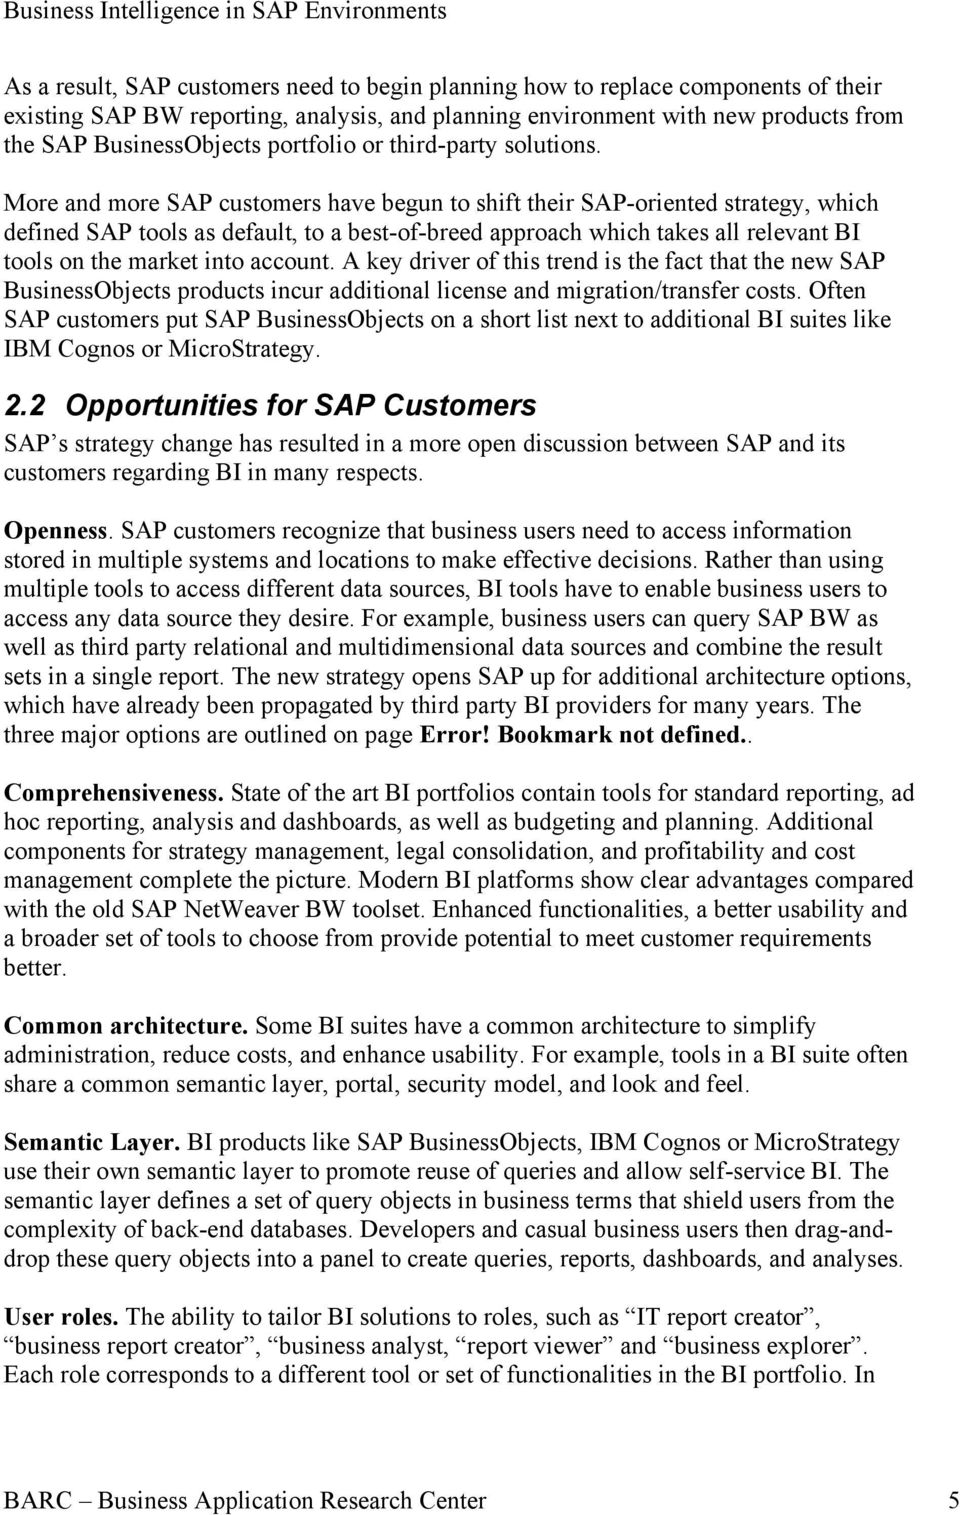 More and more SAP customers have begun to shift their SAP-oriented strategy, which defined SAP tools as default, to a best-of-breed approach which takes all relevant BI tools on the market into